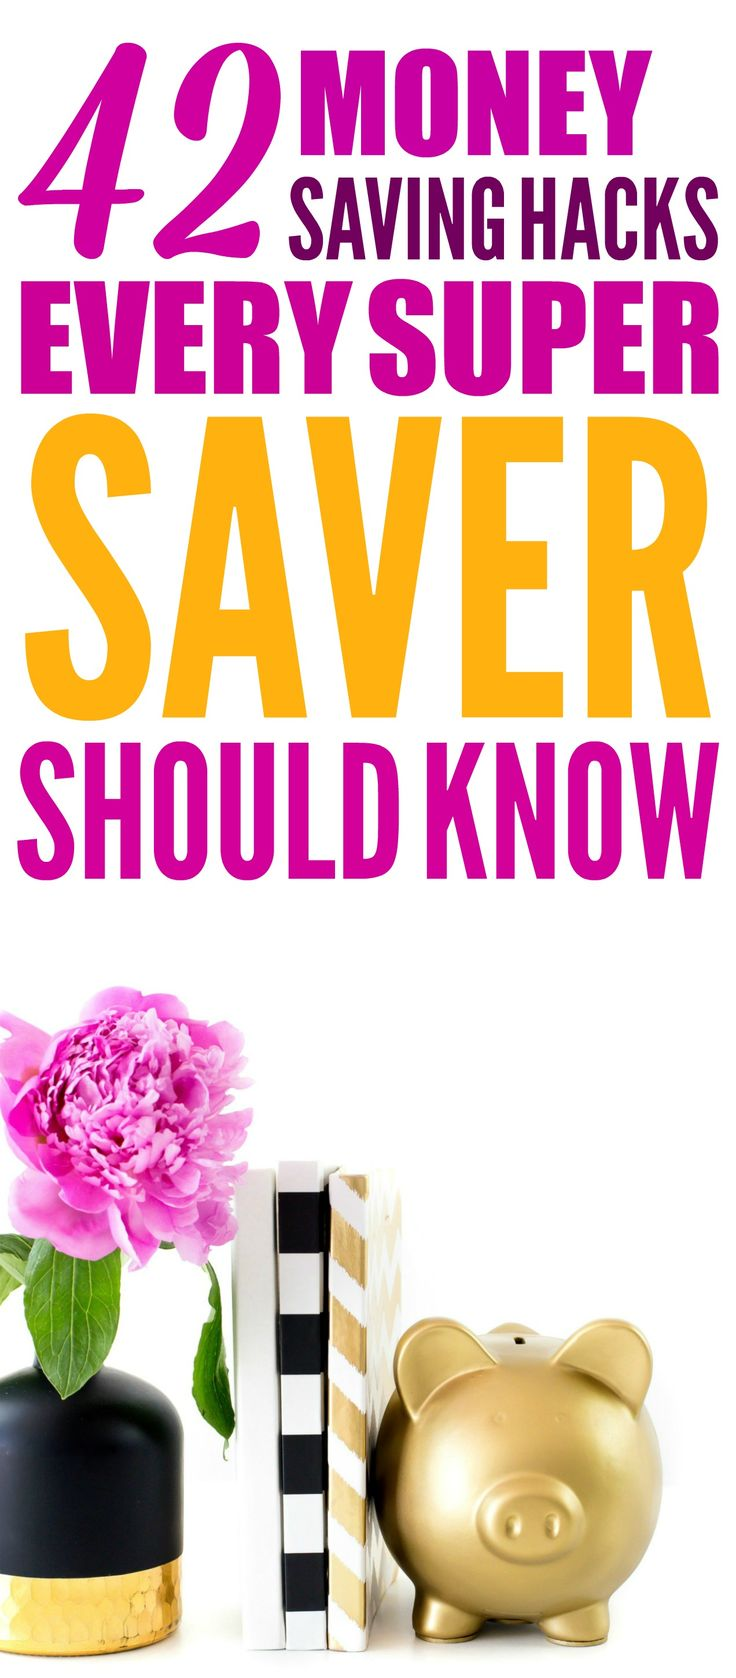 These 42 Money Saving Hacks every saver should know are THE BEST! I'm so glad I found these AMAZING money tips! Now I have great ways to save money on almost everything in my life! Definitely pinning!